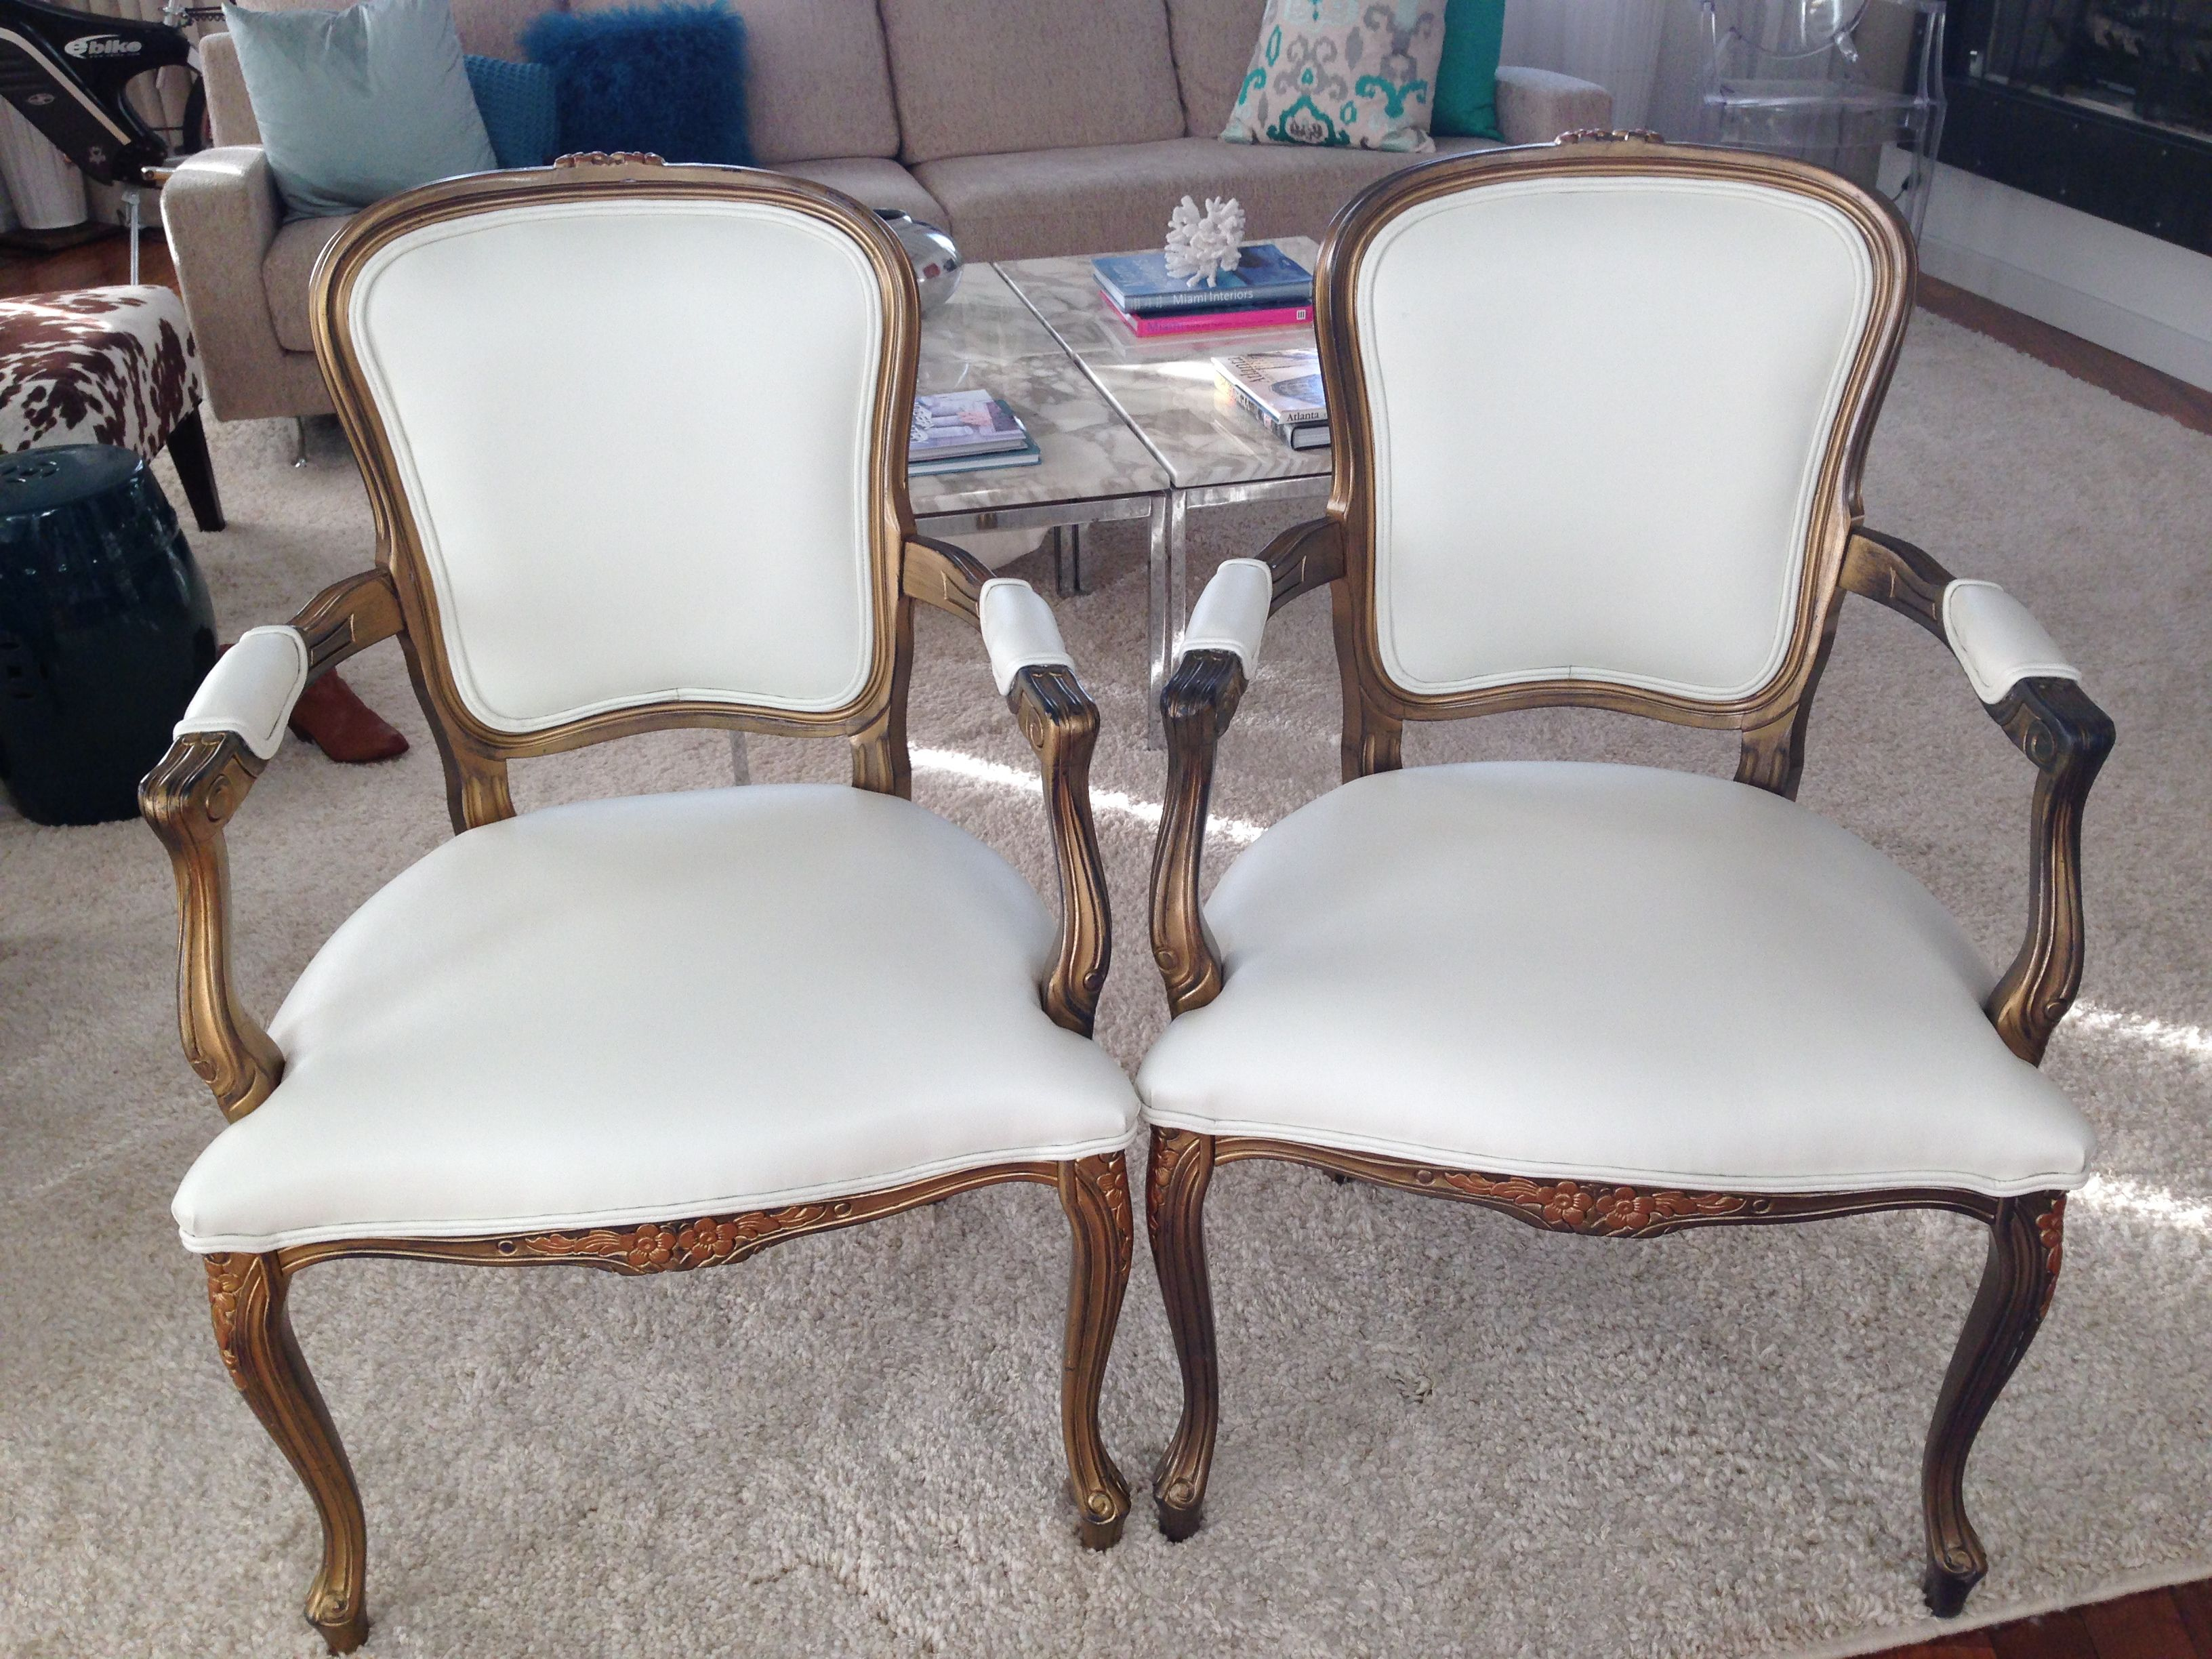 Bride And Groom Chairs Available For Rent Fourinchfold Vintage Brideandgroomchairs Sweethearttable Chair Sweetheart Table Wedding Rental Company